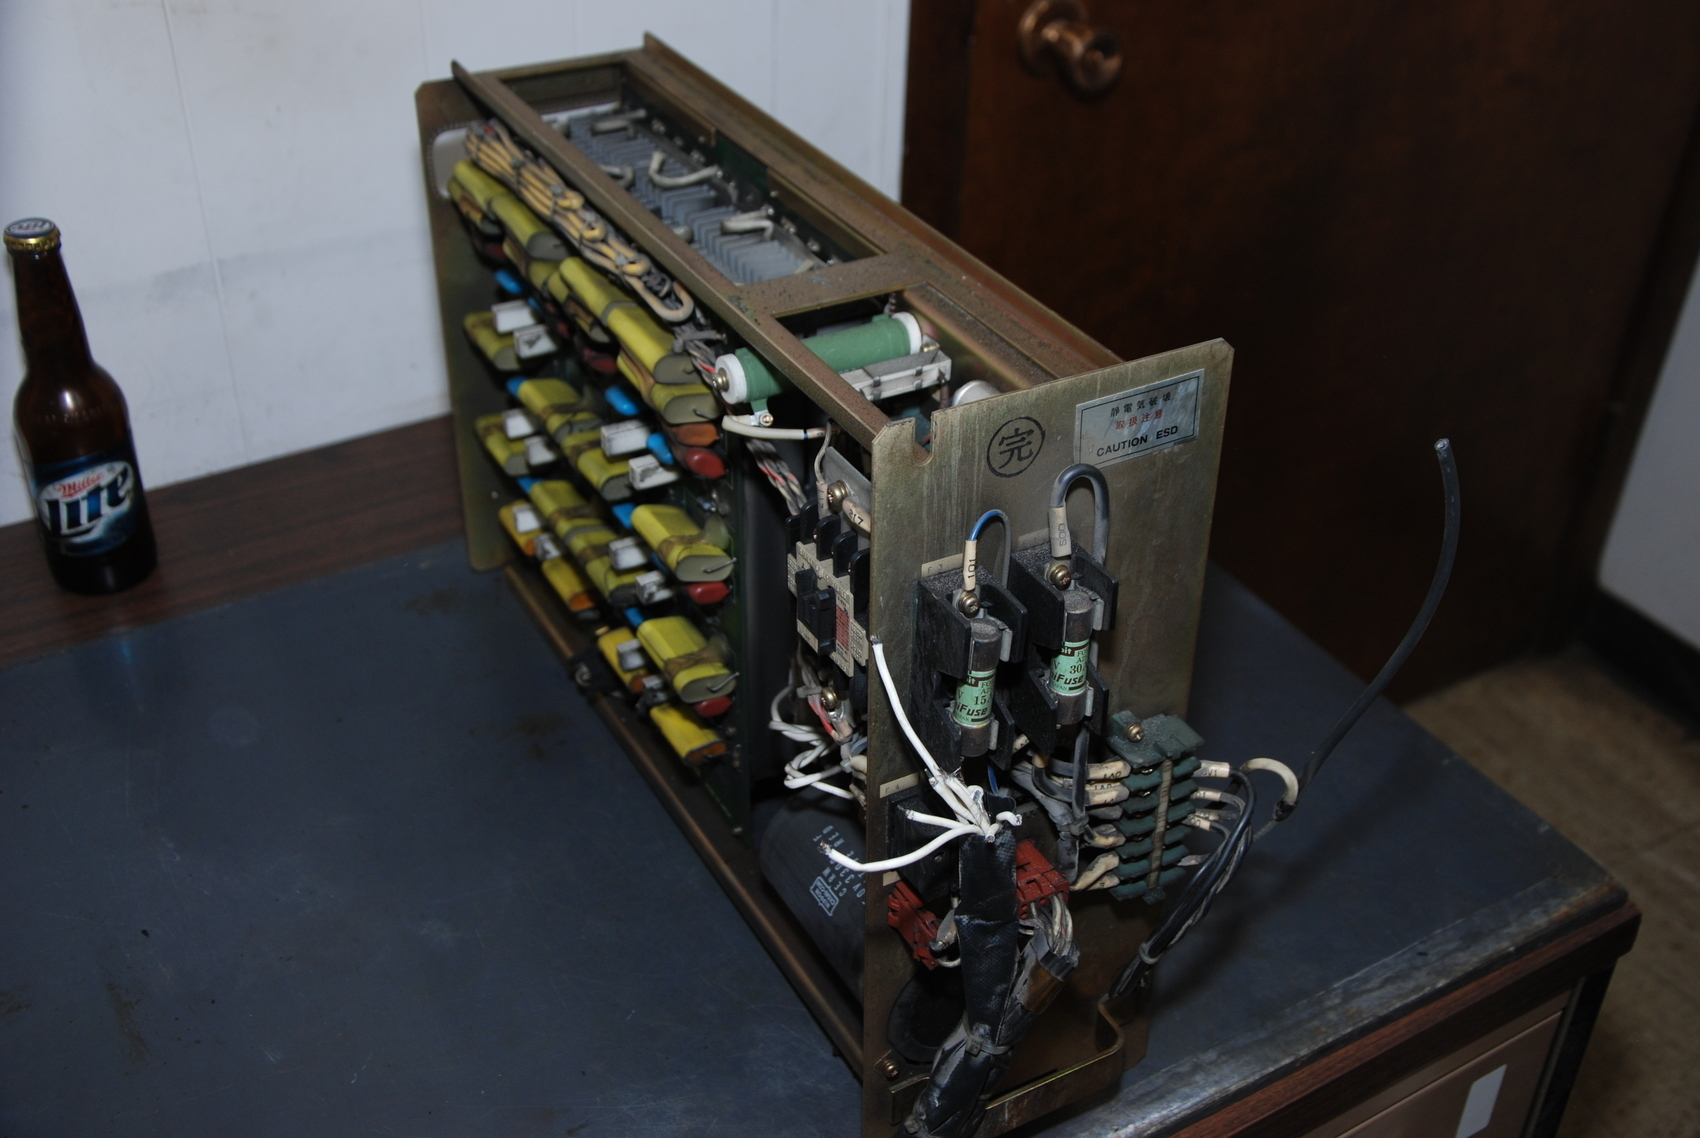 MITSUBISHI BY998D656H01 BY171A412G51 EDM POWER SUPPLY